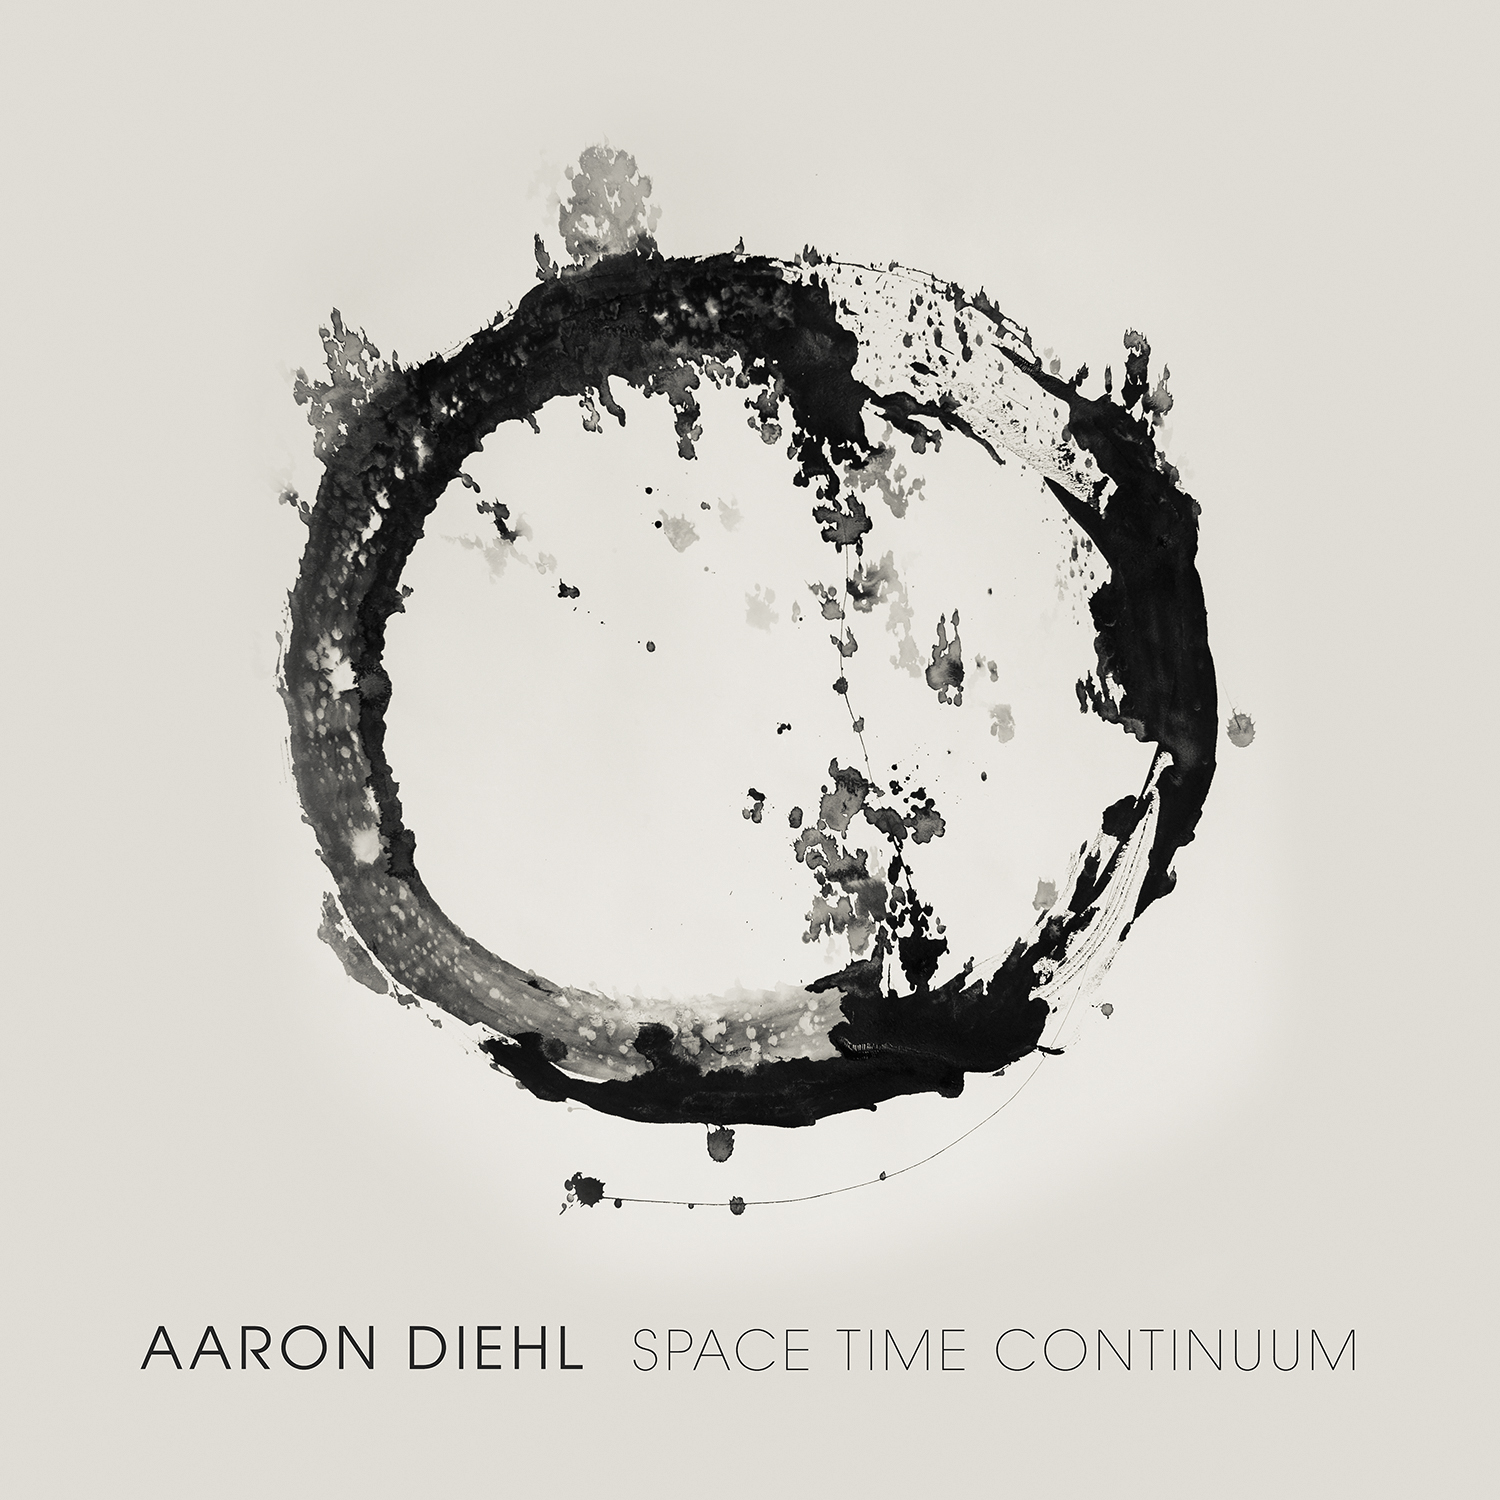 Aaron Diehl - Space, Time, Continuum - Cover Image